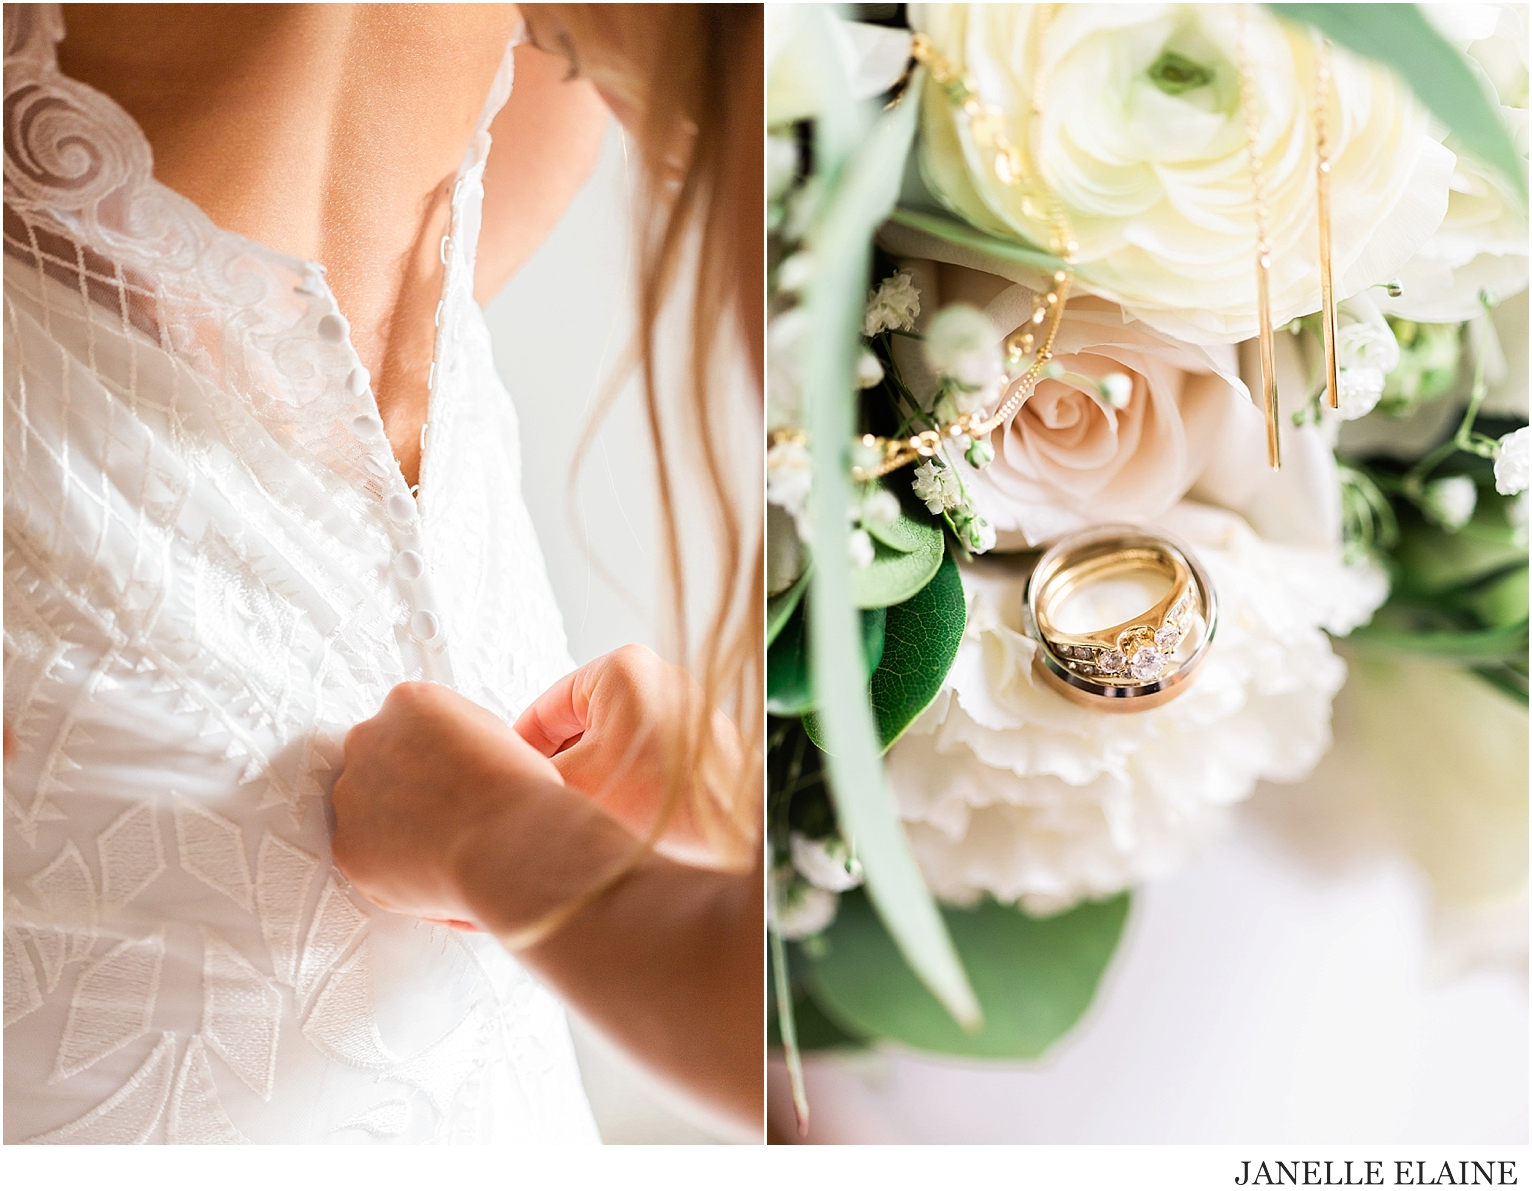 Tricia and Nathan Goddard Wedding-Getting Ready Photos-Janelle Elaine Photography-60.jpg